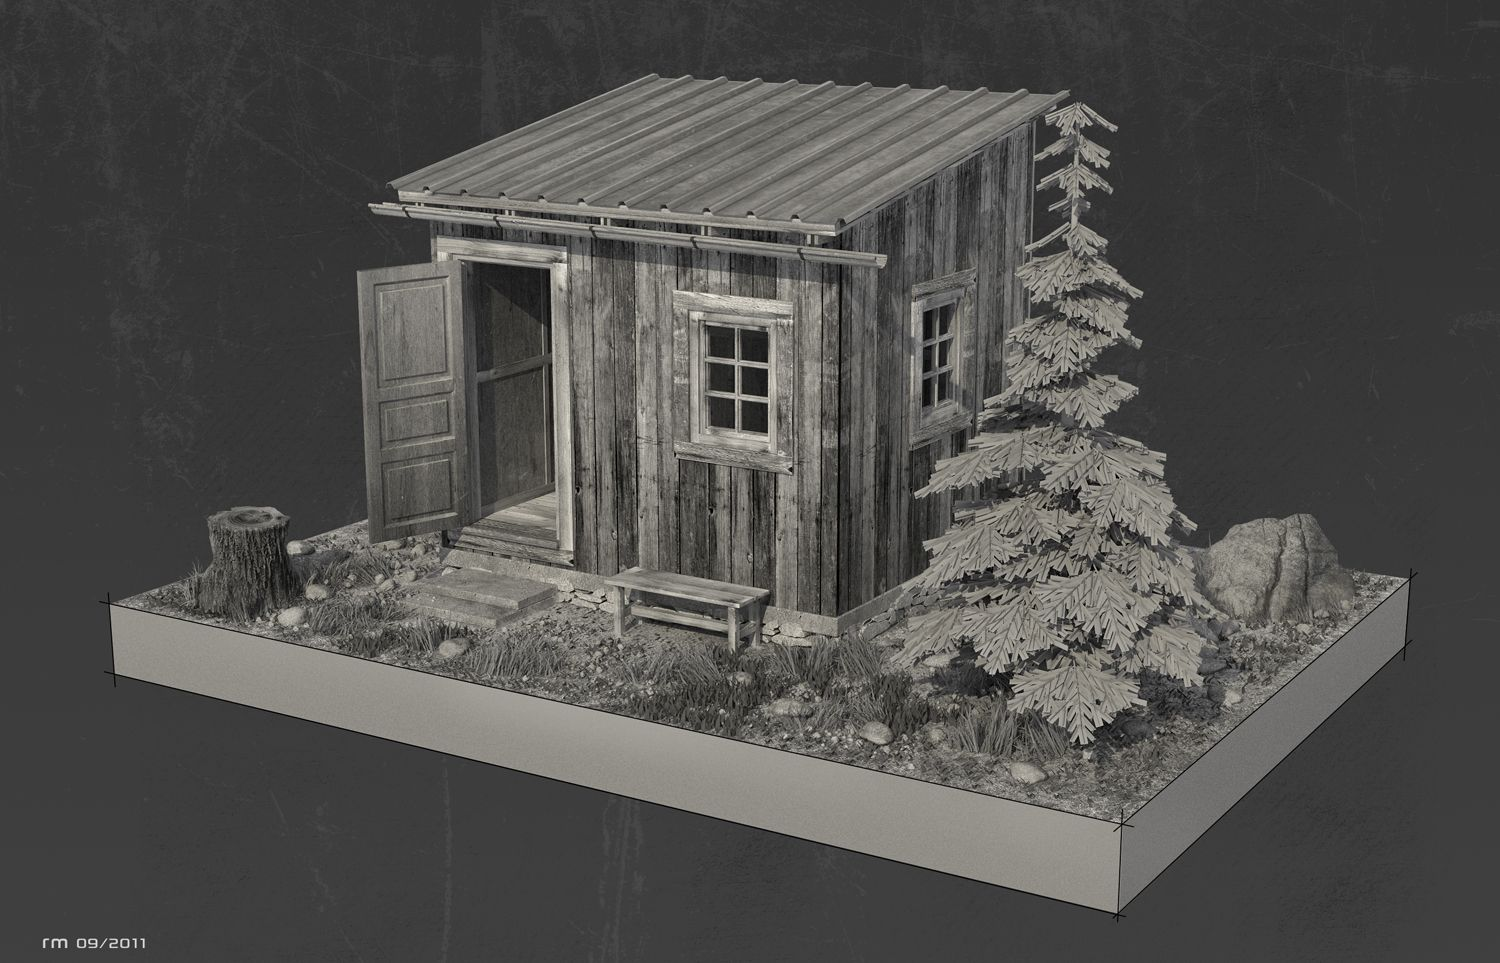 Personal work based on the Hermit Cabin by architect Mats Theselius Rendered in VRAY for RHINO